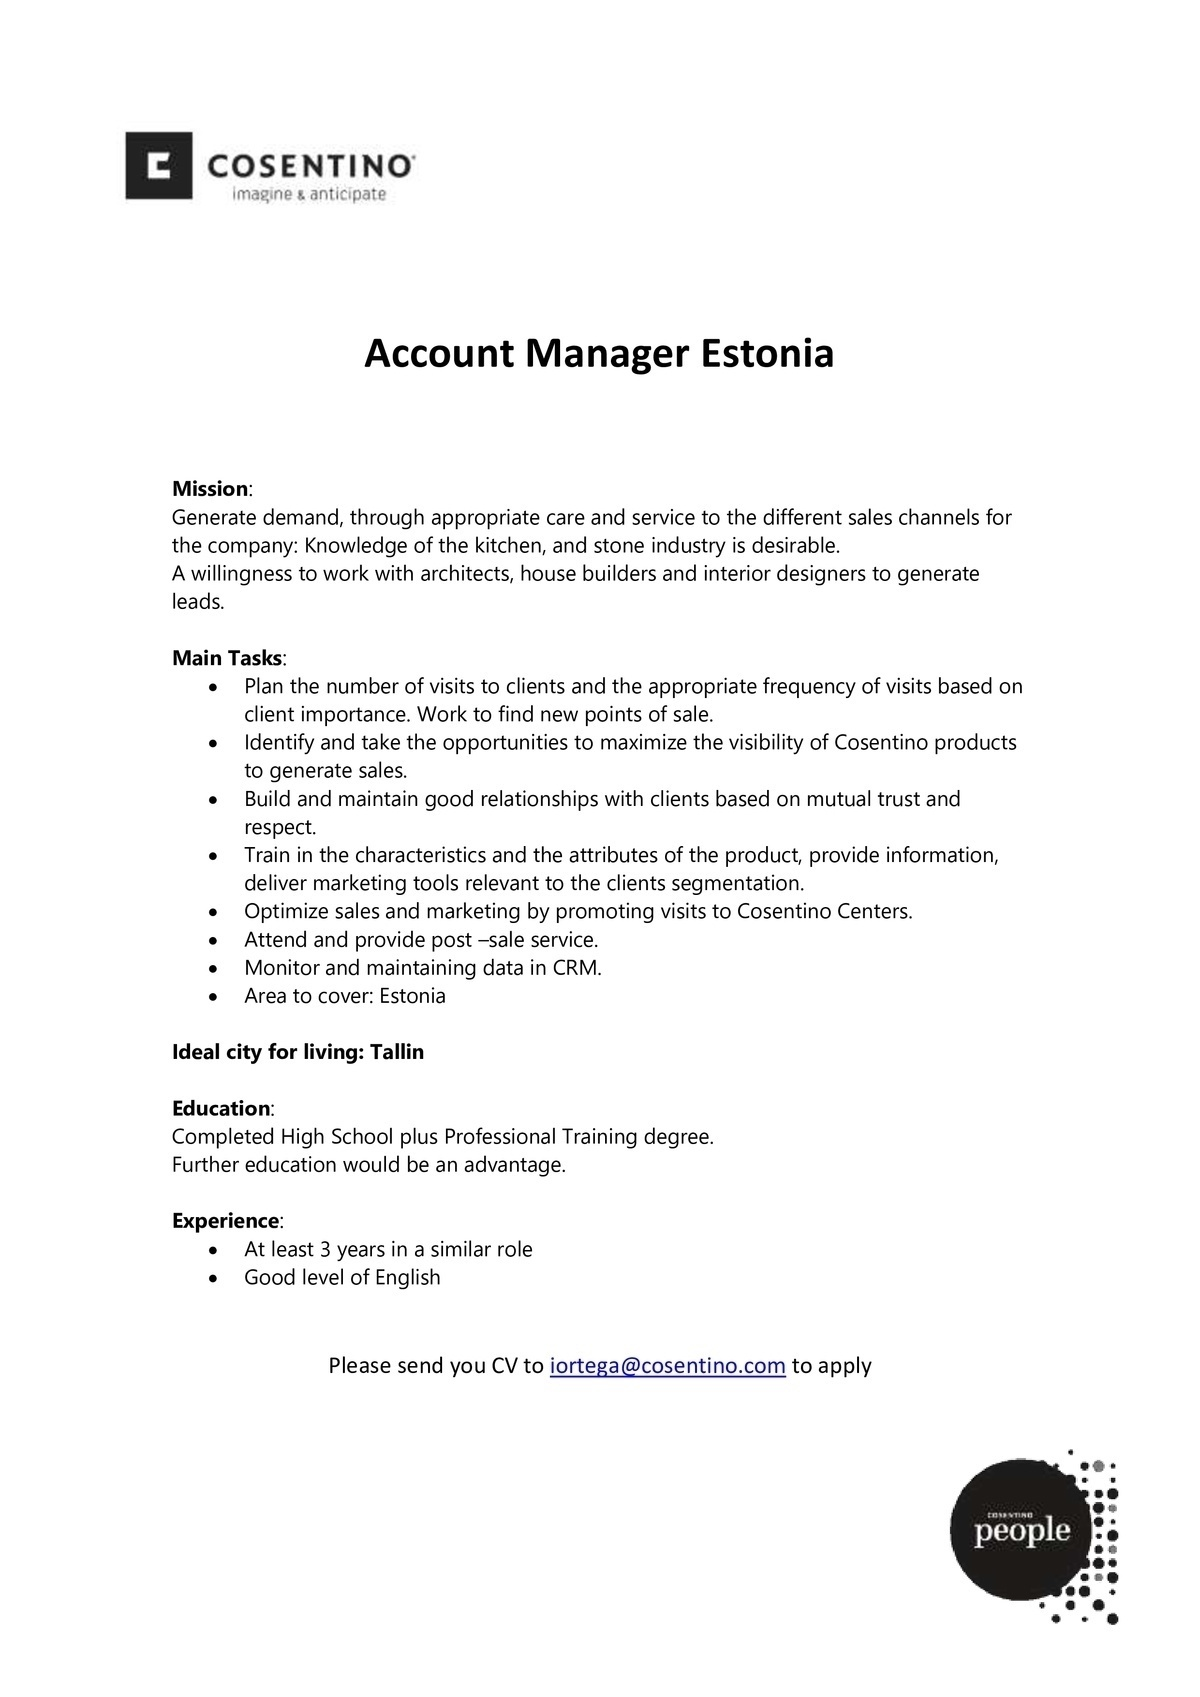 Cosentino Account Manager (m/f/x)